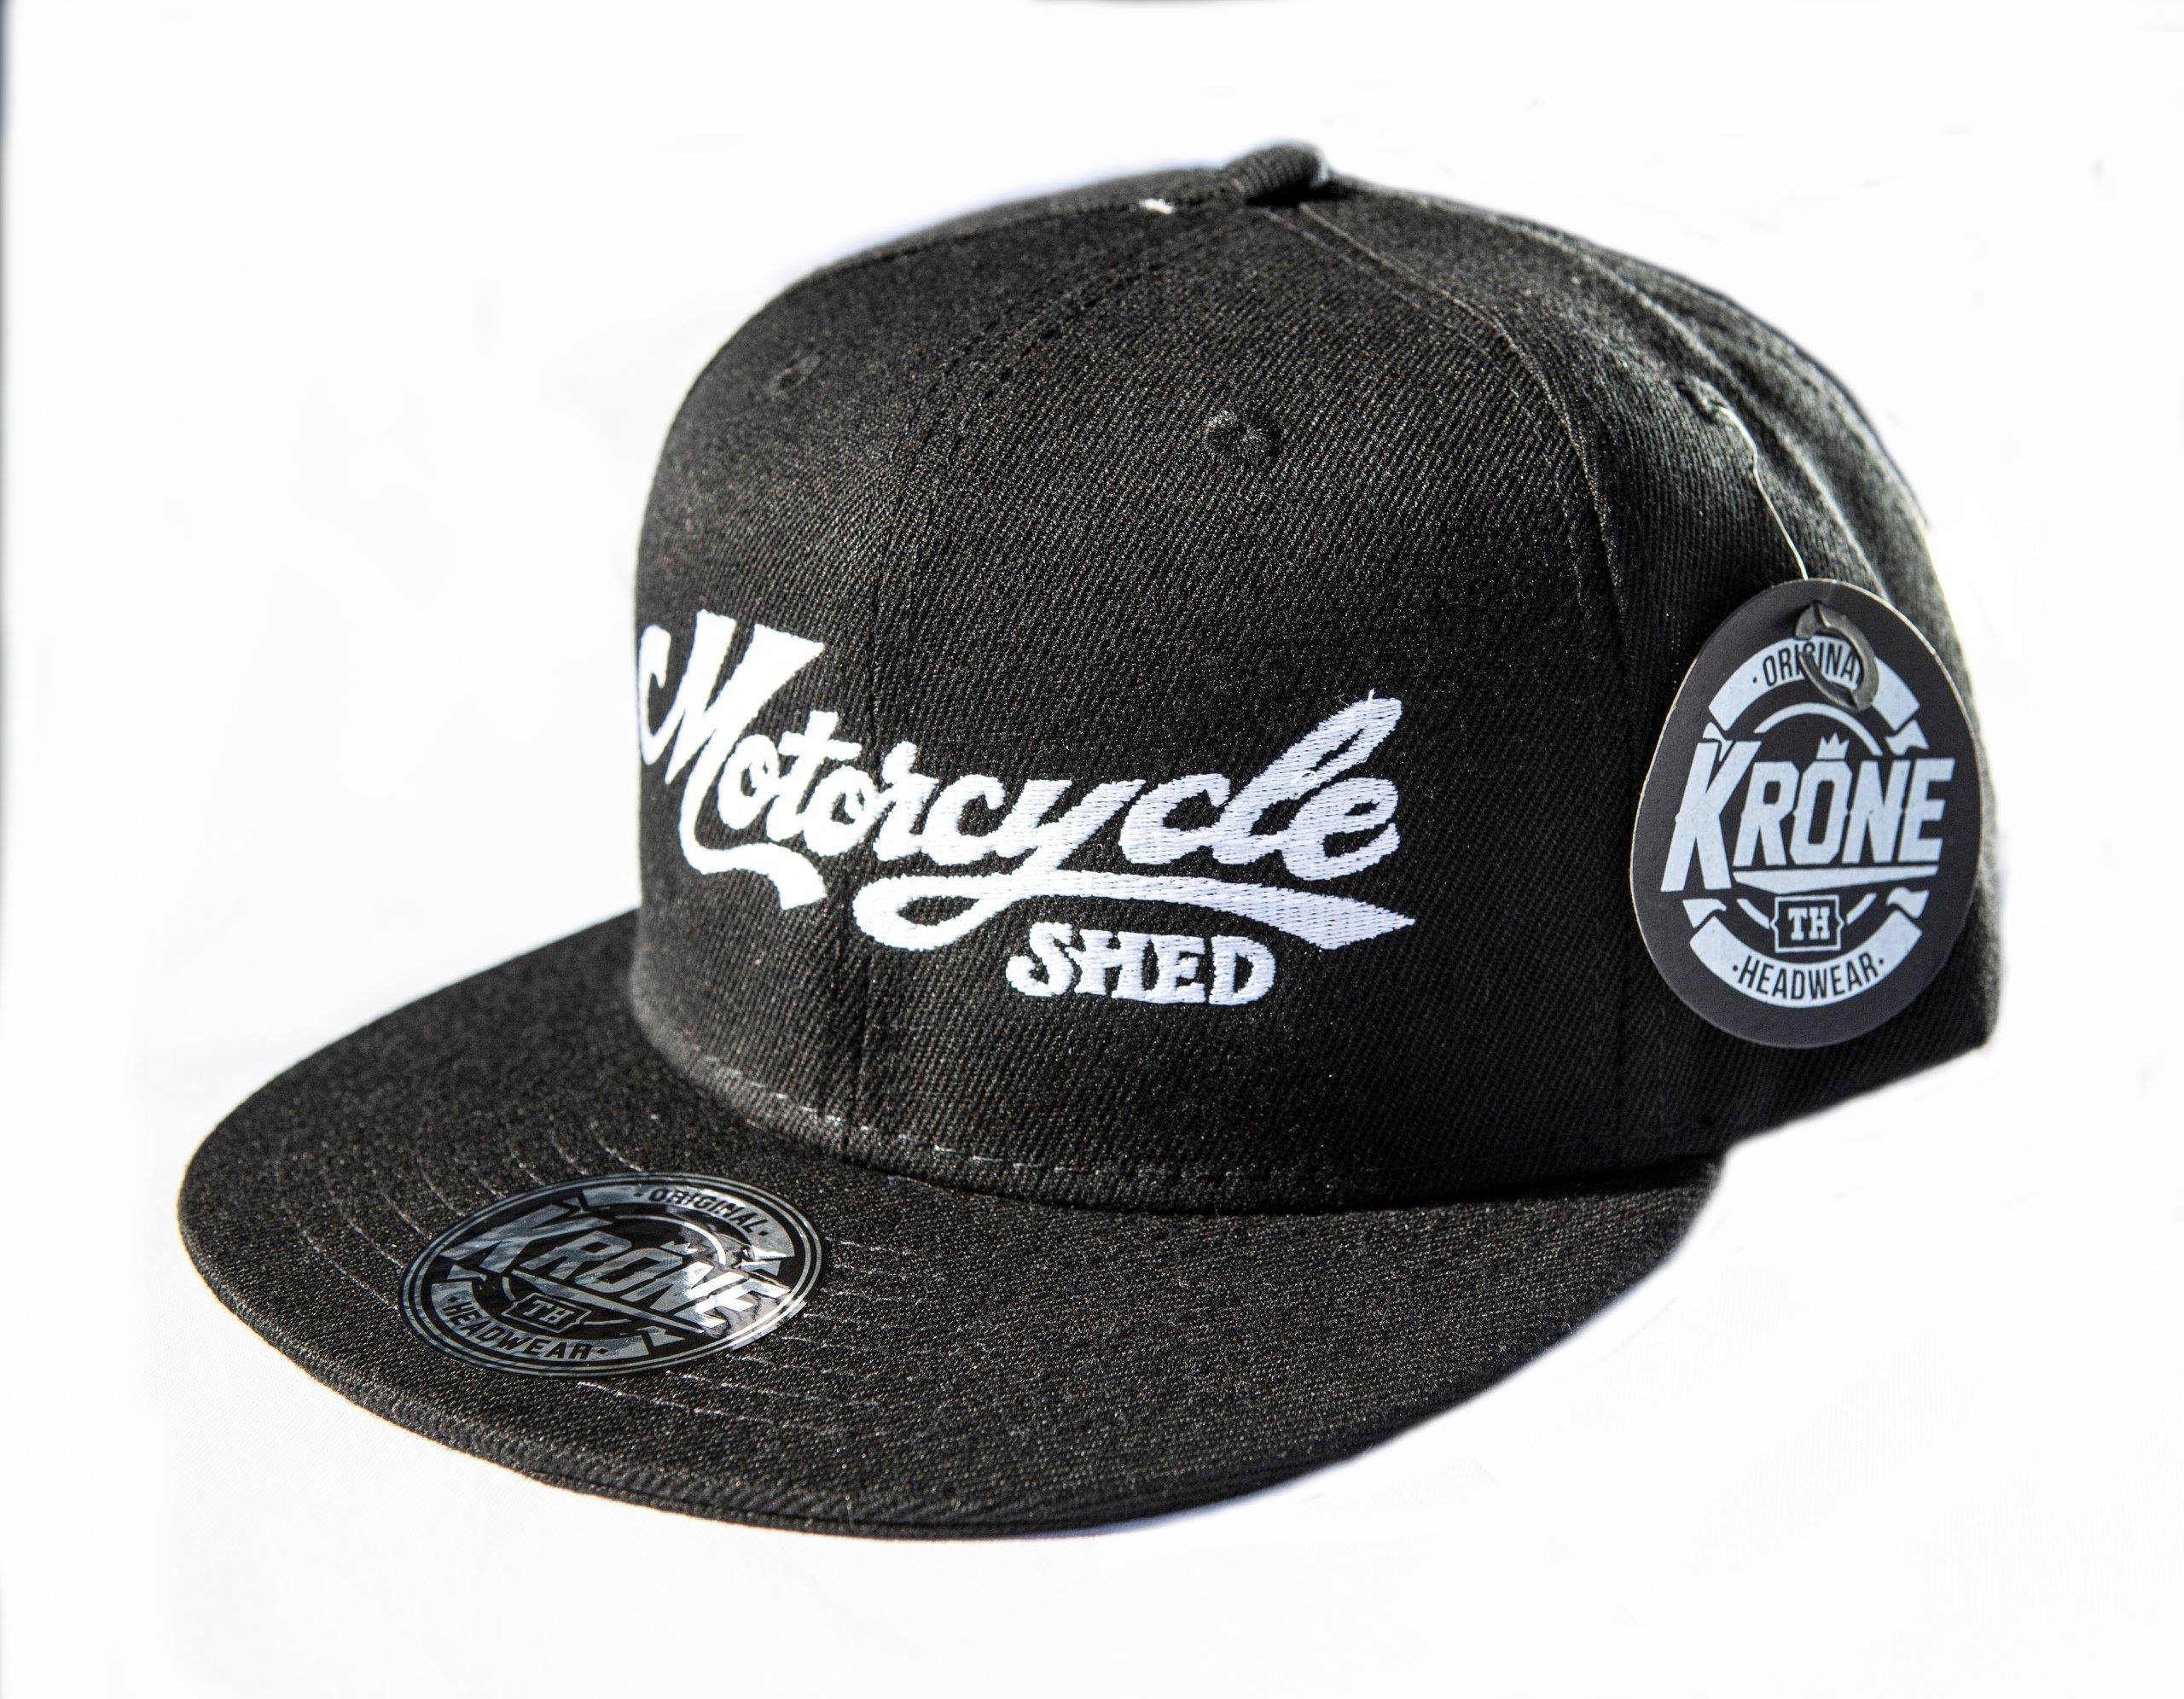 Motorcycle Shed Flat Cap - Cotton Back 00003